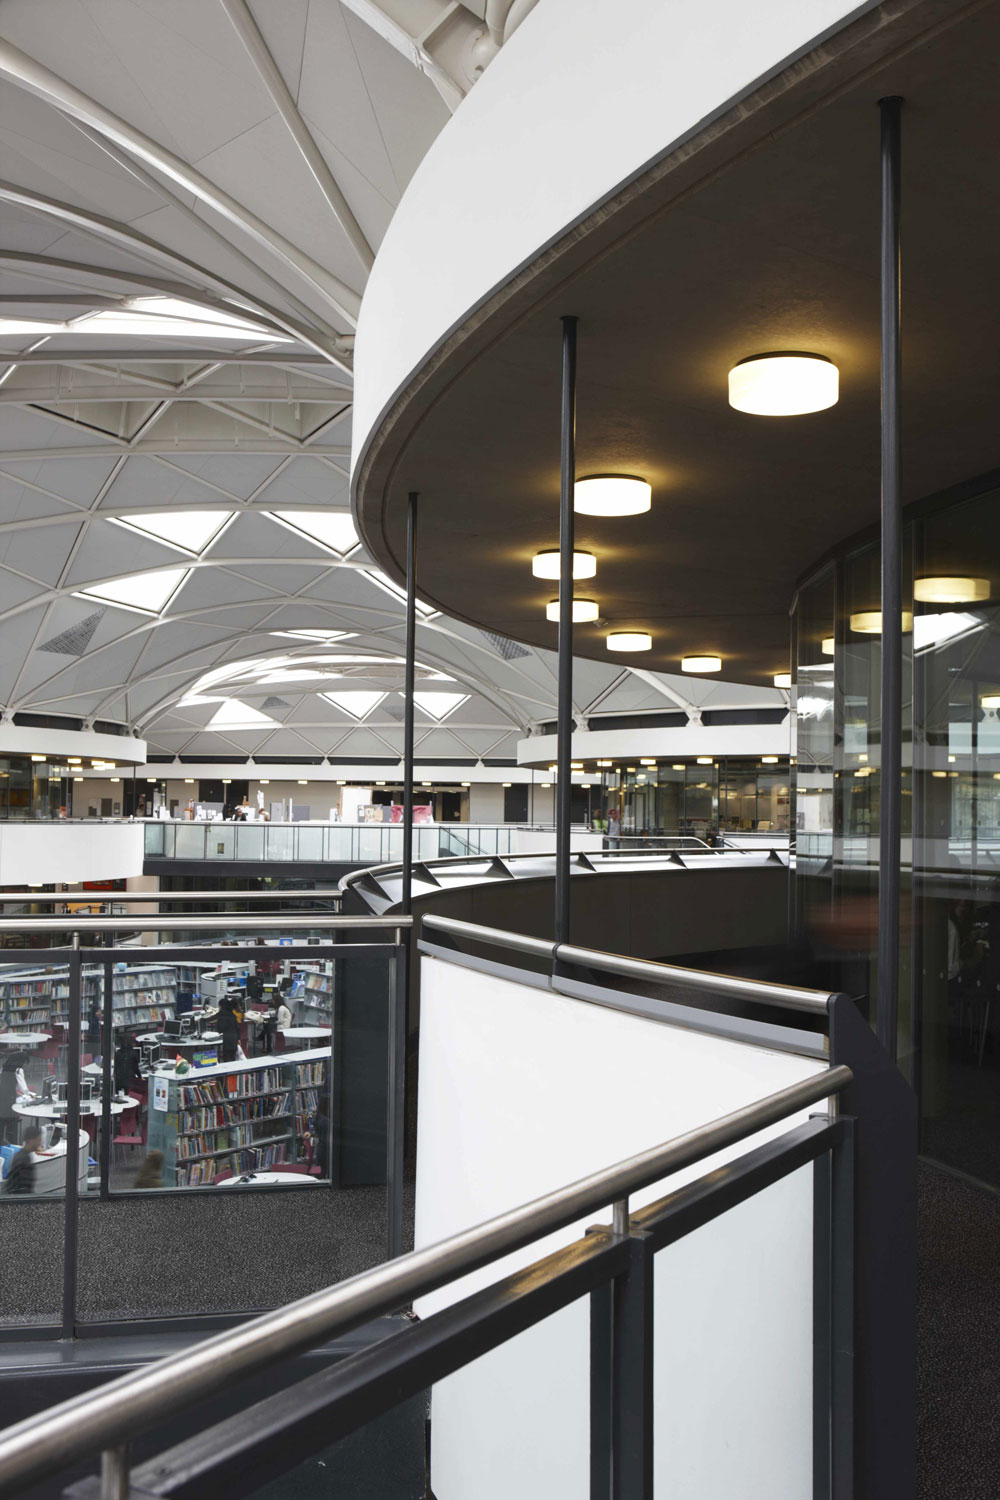 Thomas Deacon Academy curved elevated walkways and classrooms, Peterborough   Interior Photographers